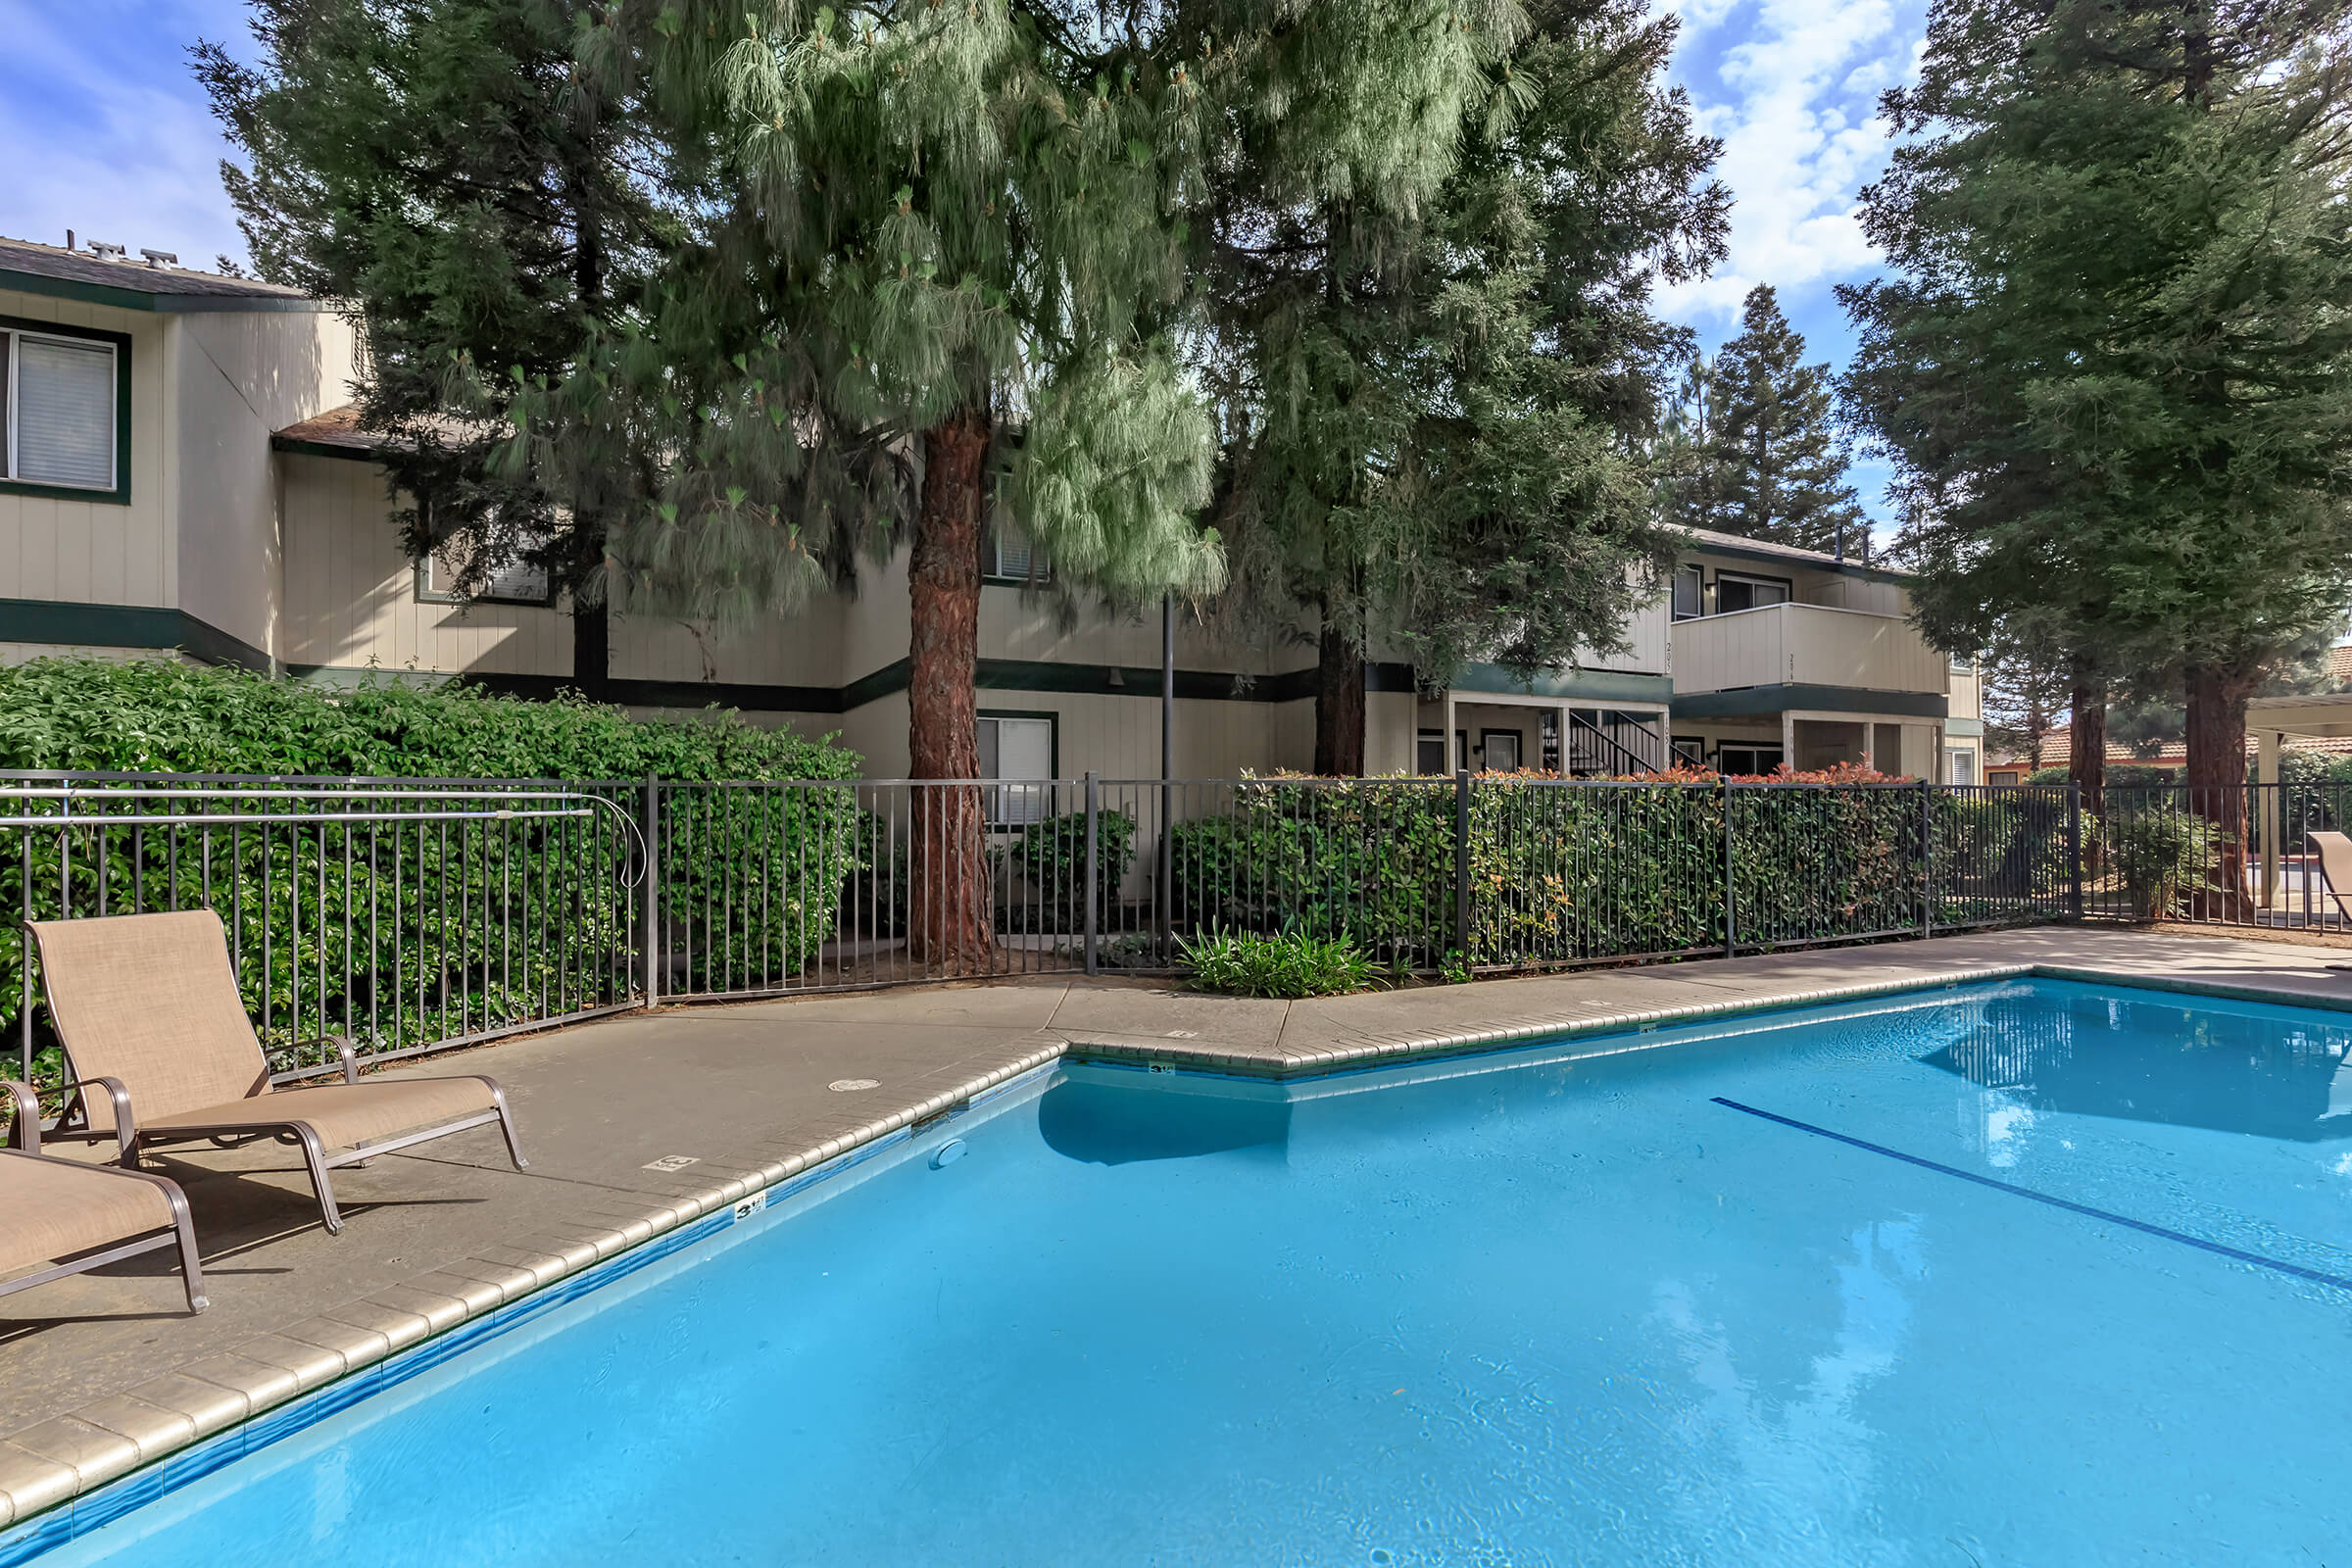 Picture of Sequoia Knolls Apartments